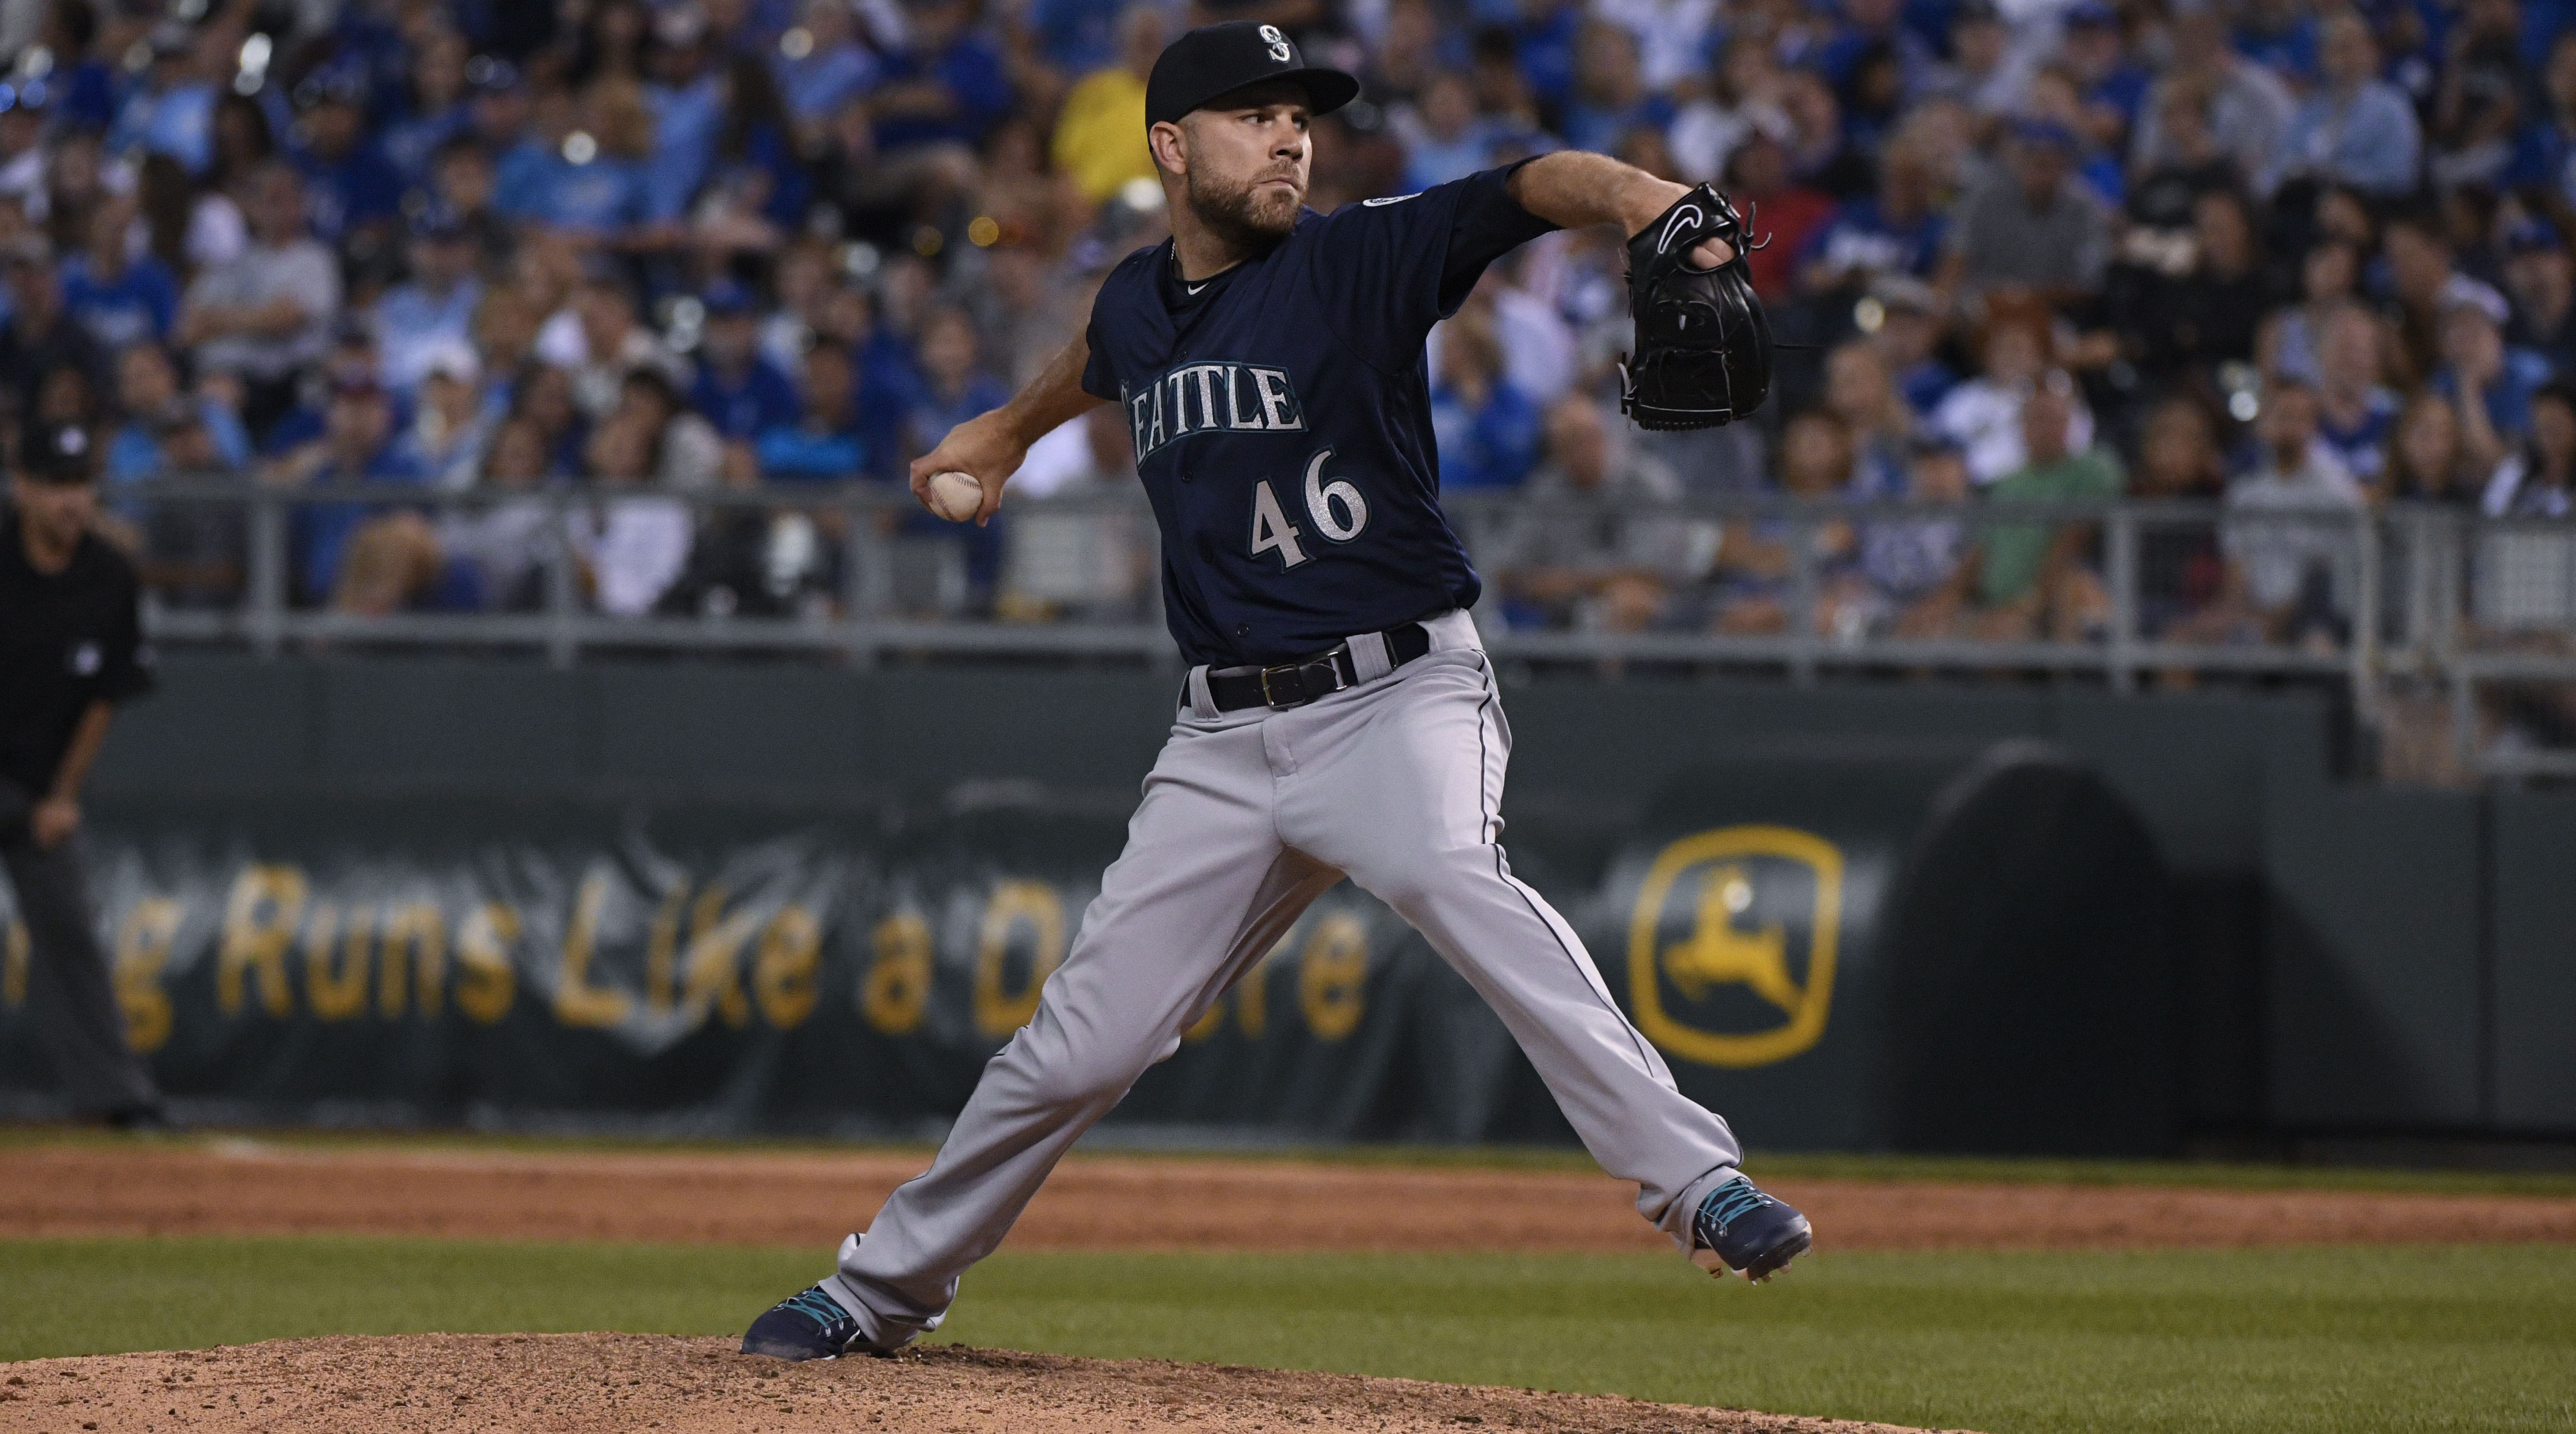 Mariners Reliever David Phelps Will Have Tommy John Surgery for Torn UCL